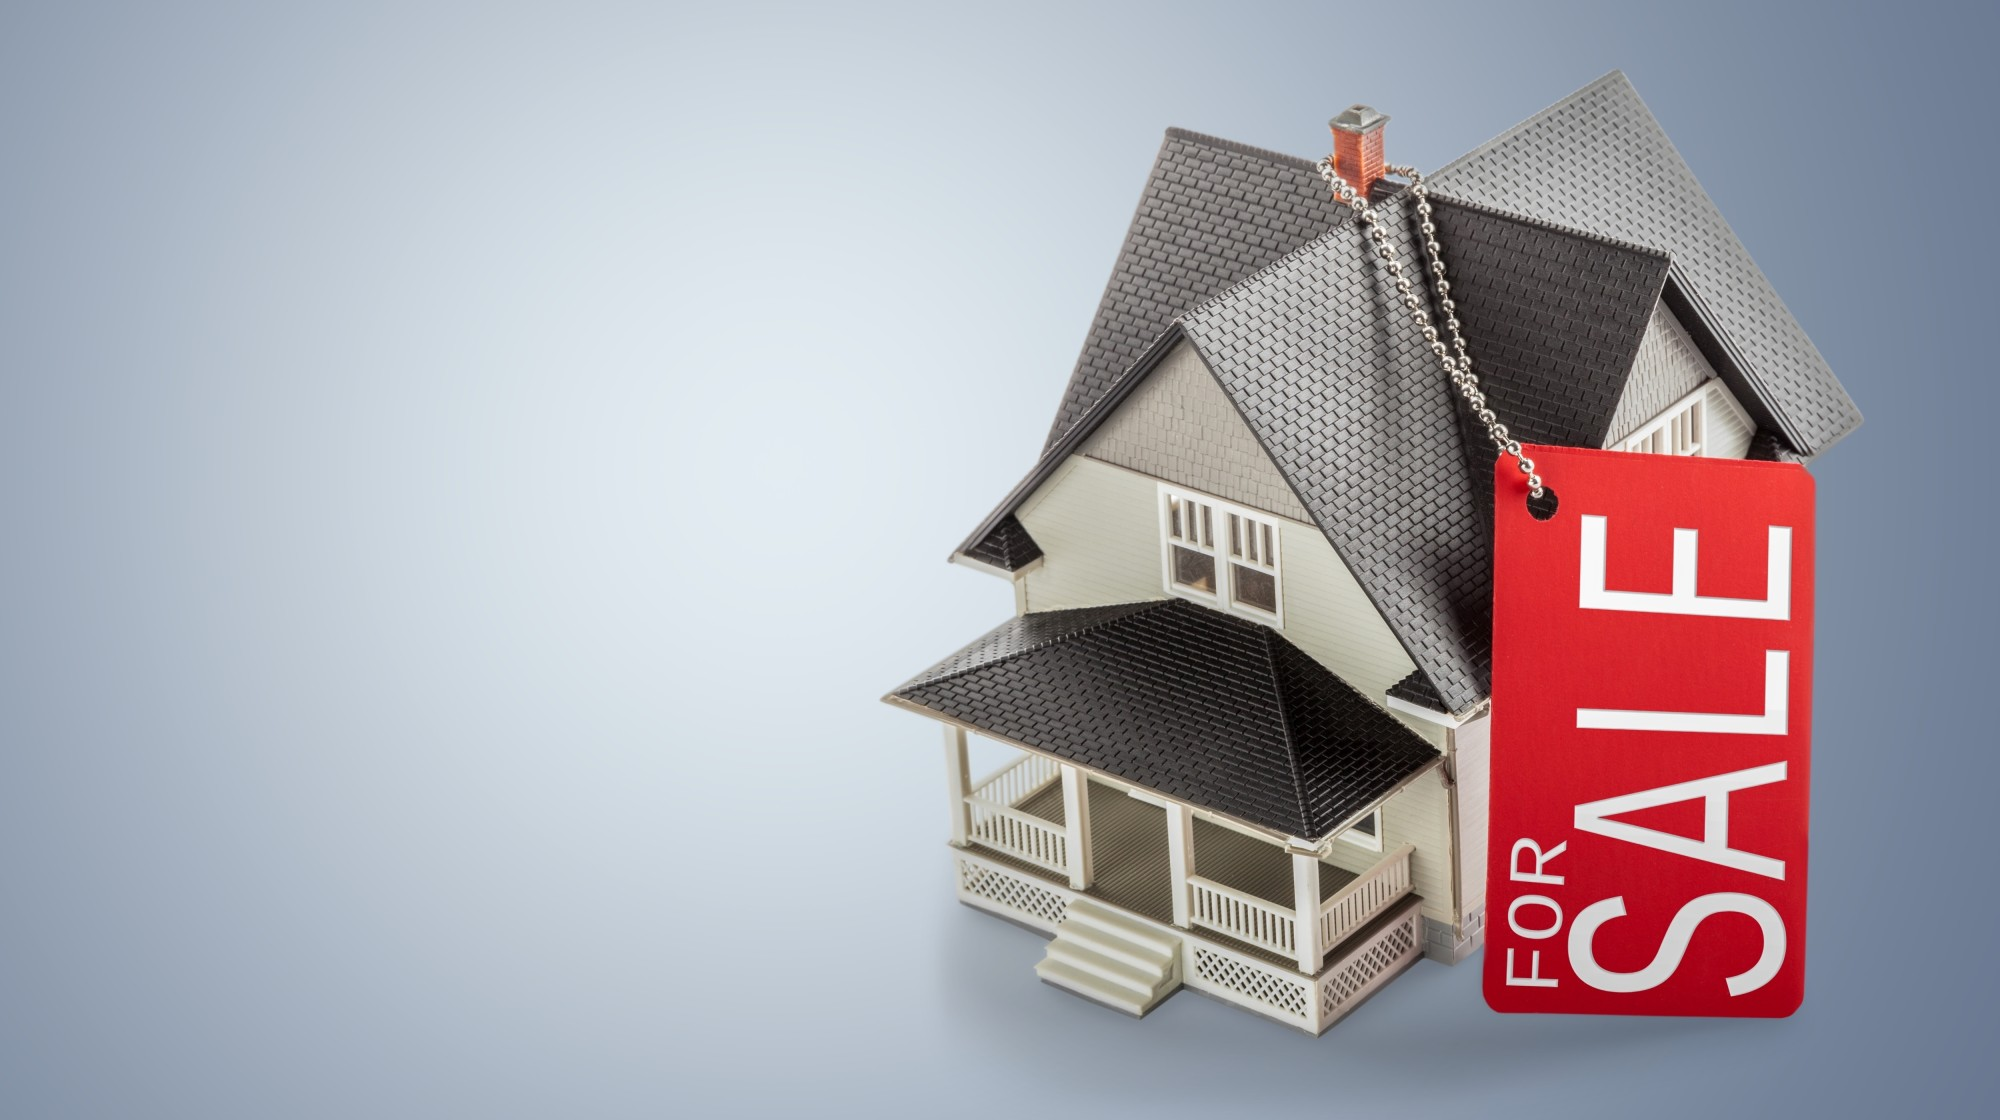 Should You Sell Your House Now? Here's Why The Market's Hot